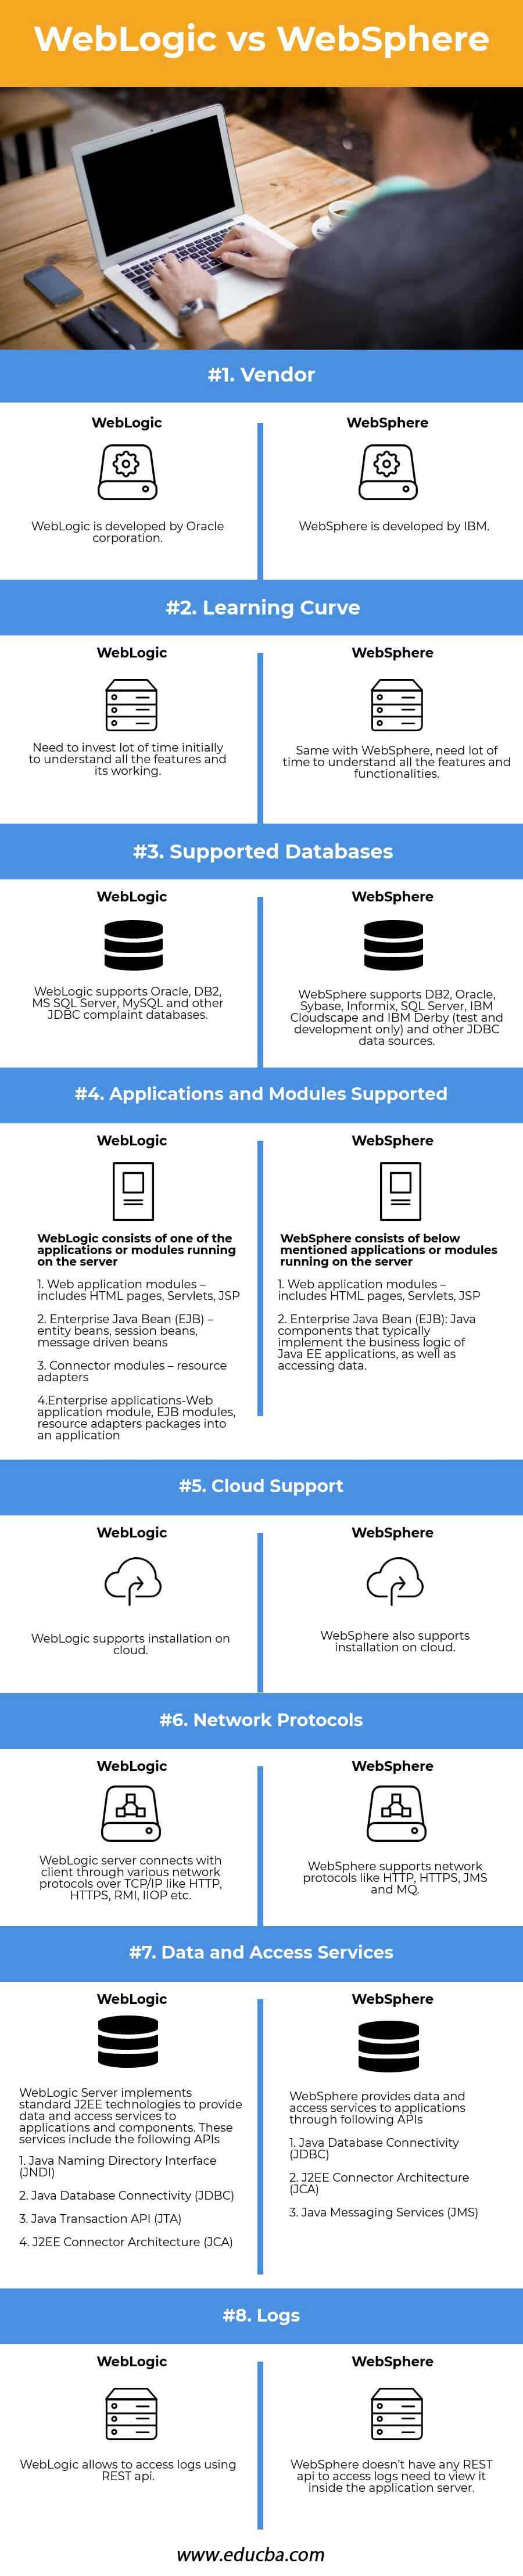 WebLogic vs WebSphere | Find Out The Top 8 Useful Differences